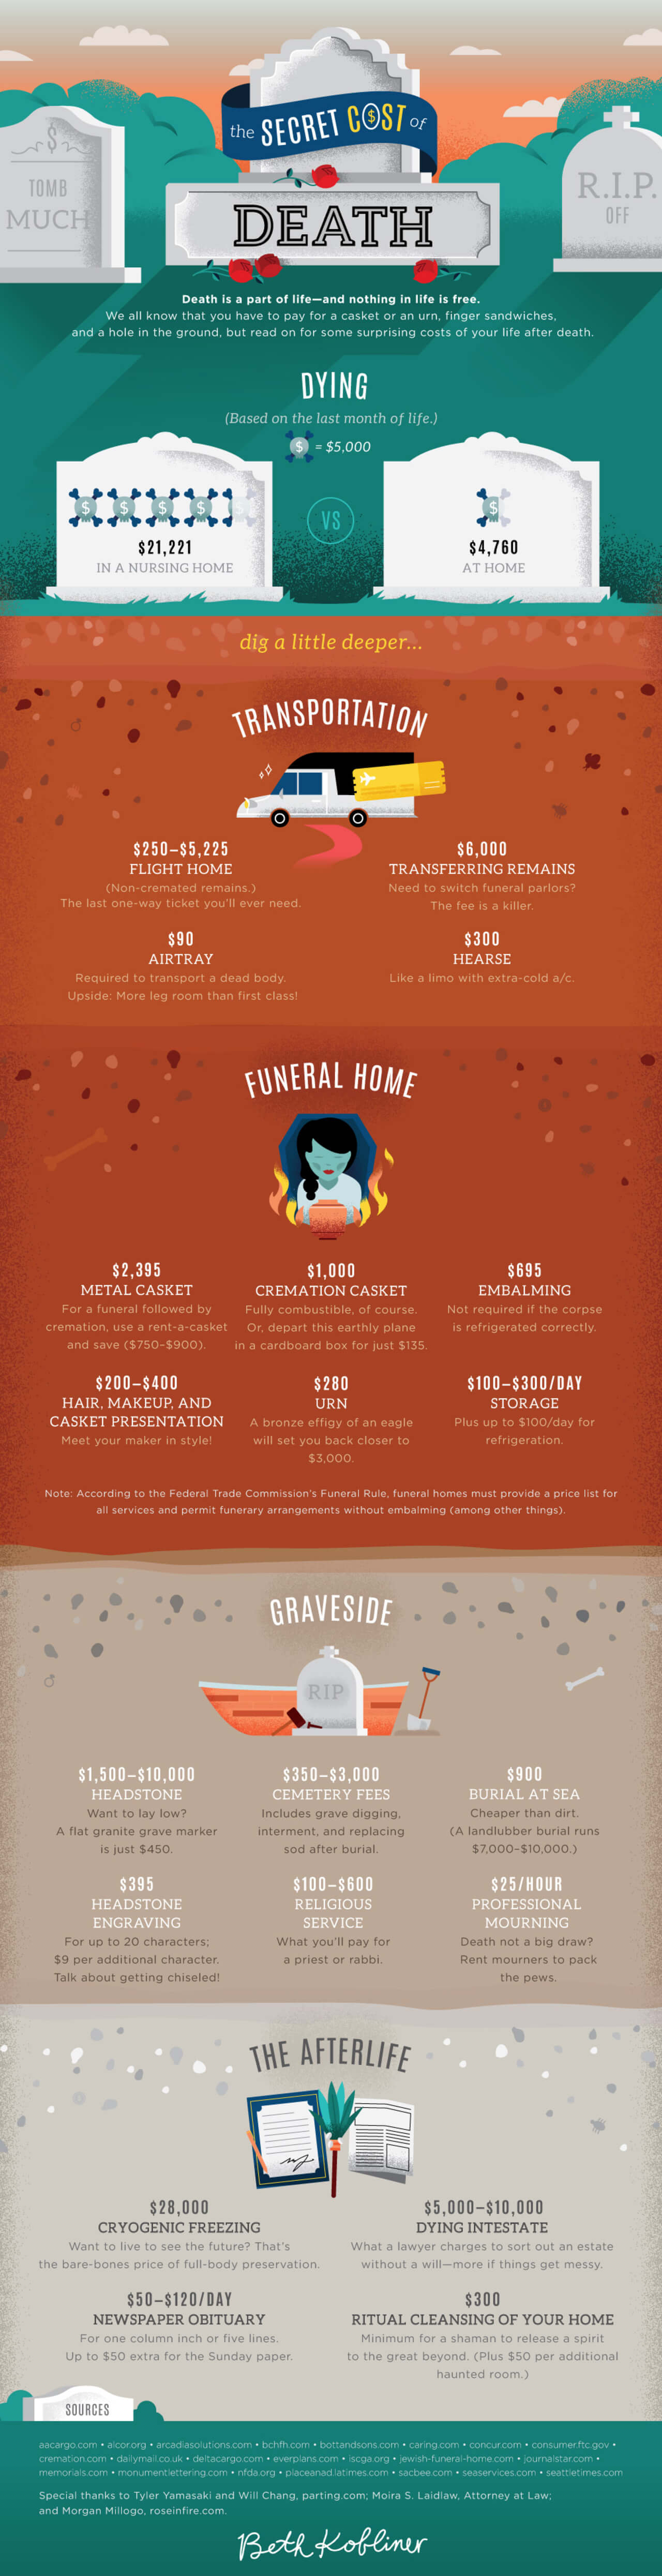 Best Infographics: The Secret Cost of Death